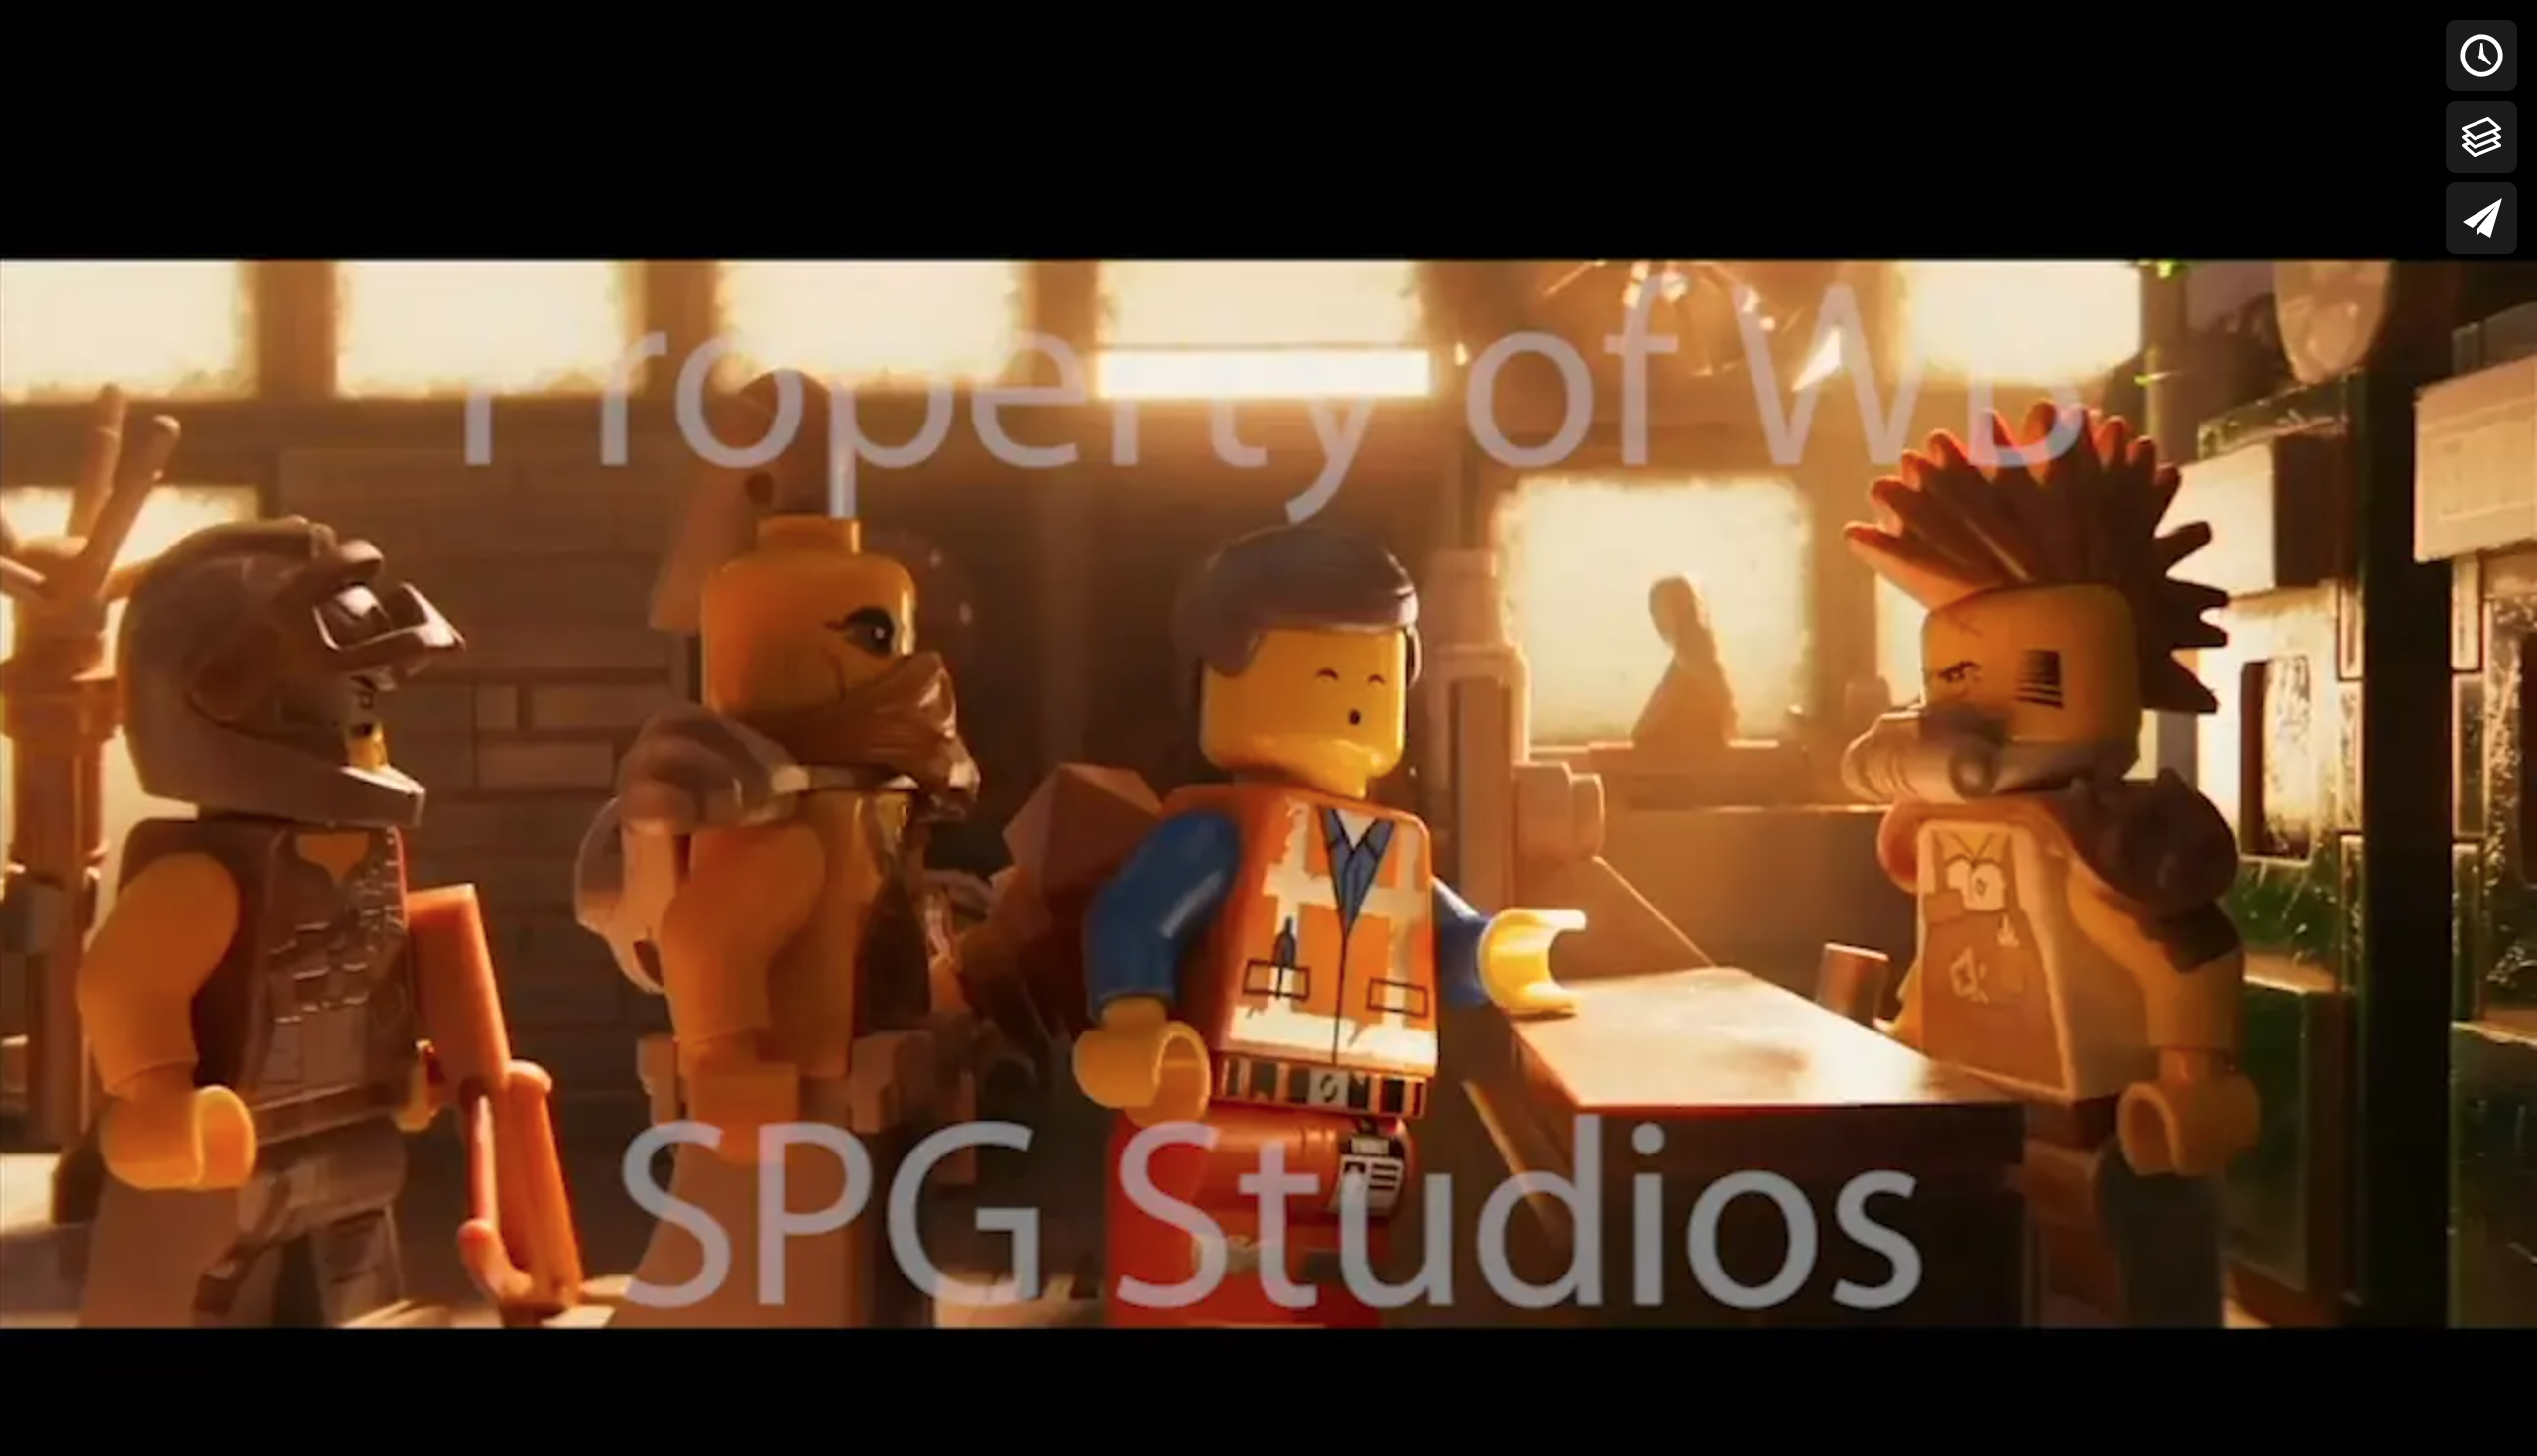 Previous Voiceover work from SPG Studios